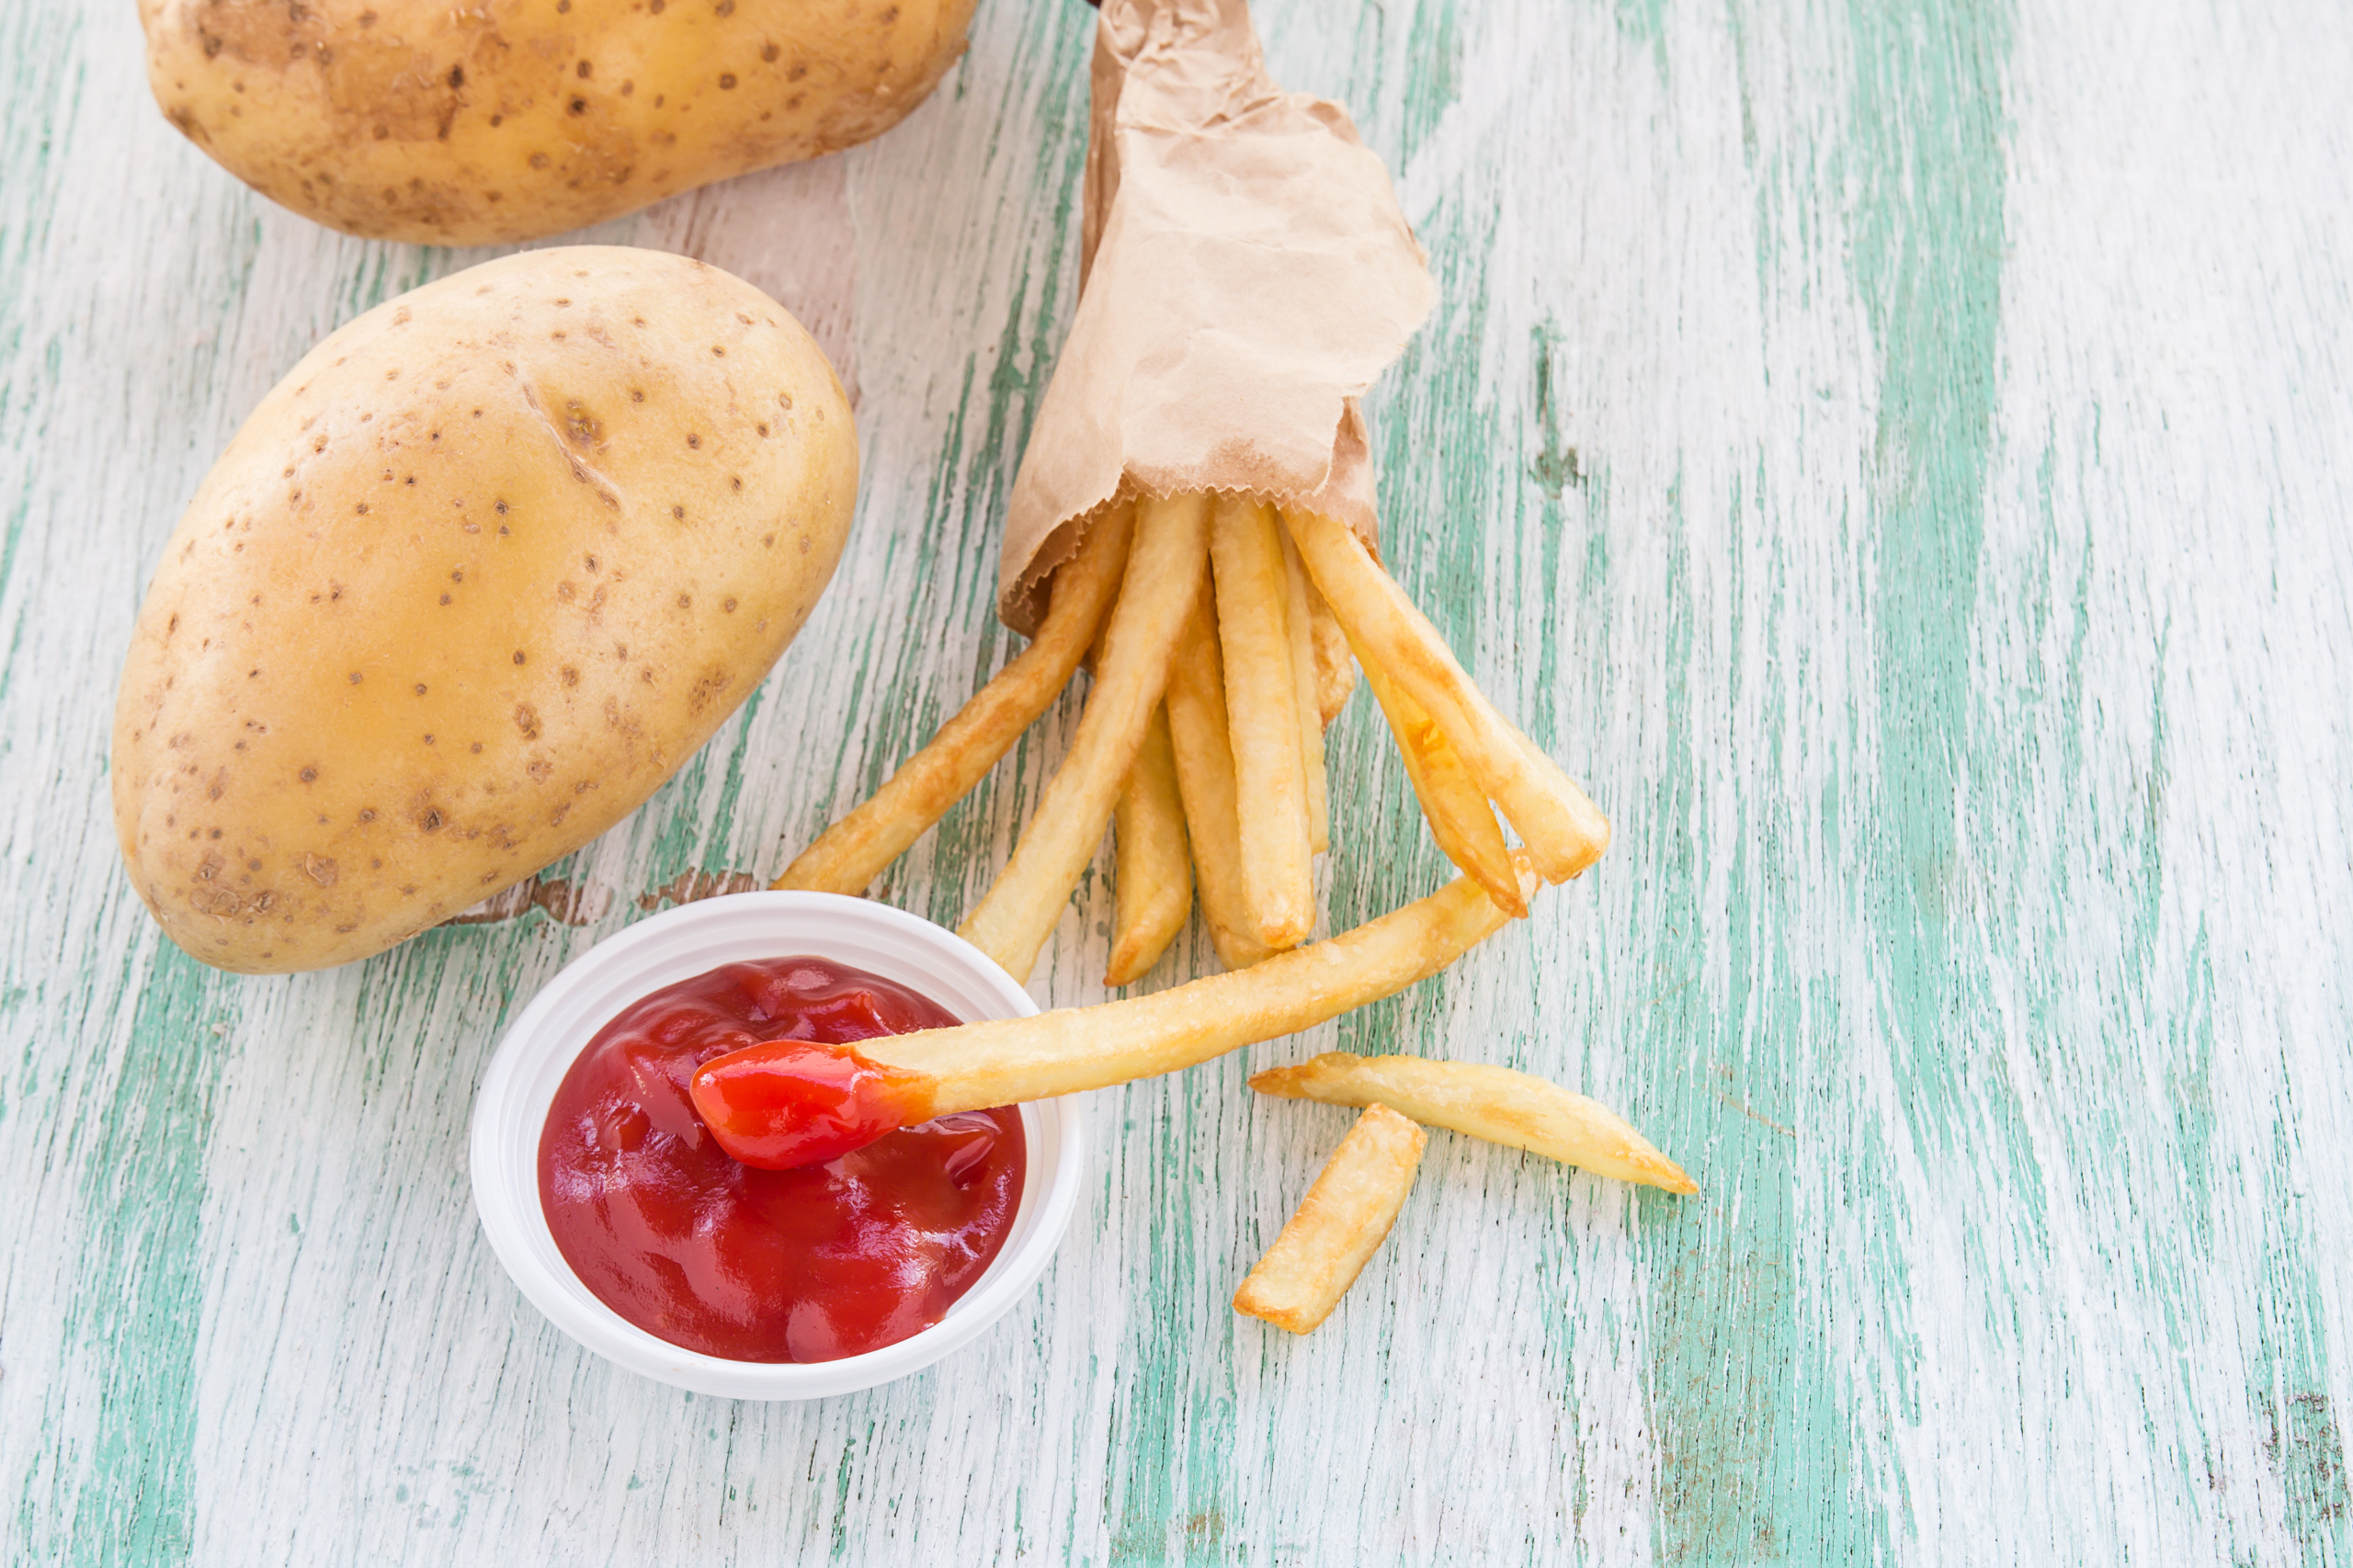 bond-over-french-fries